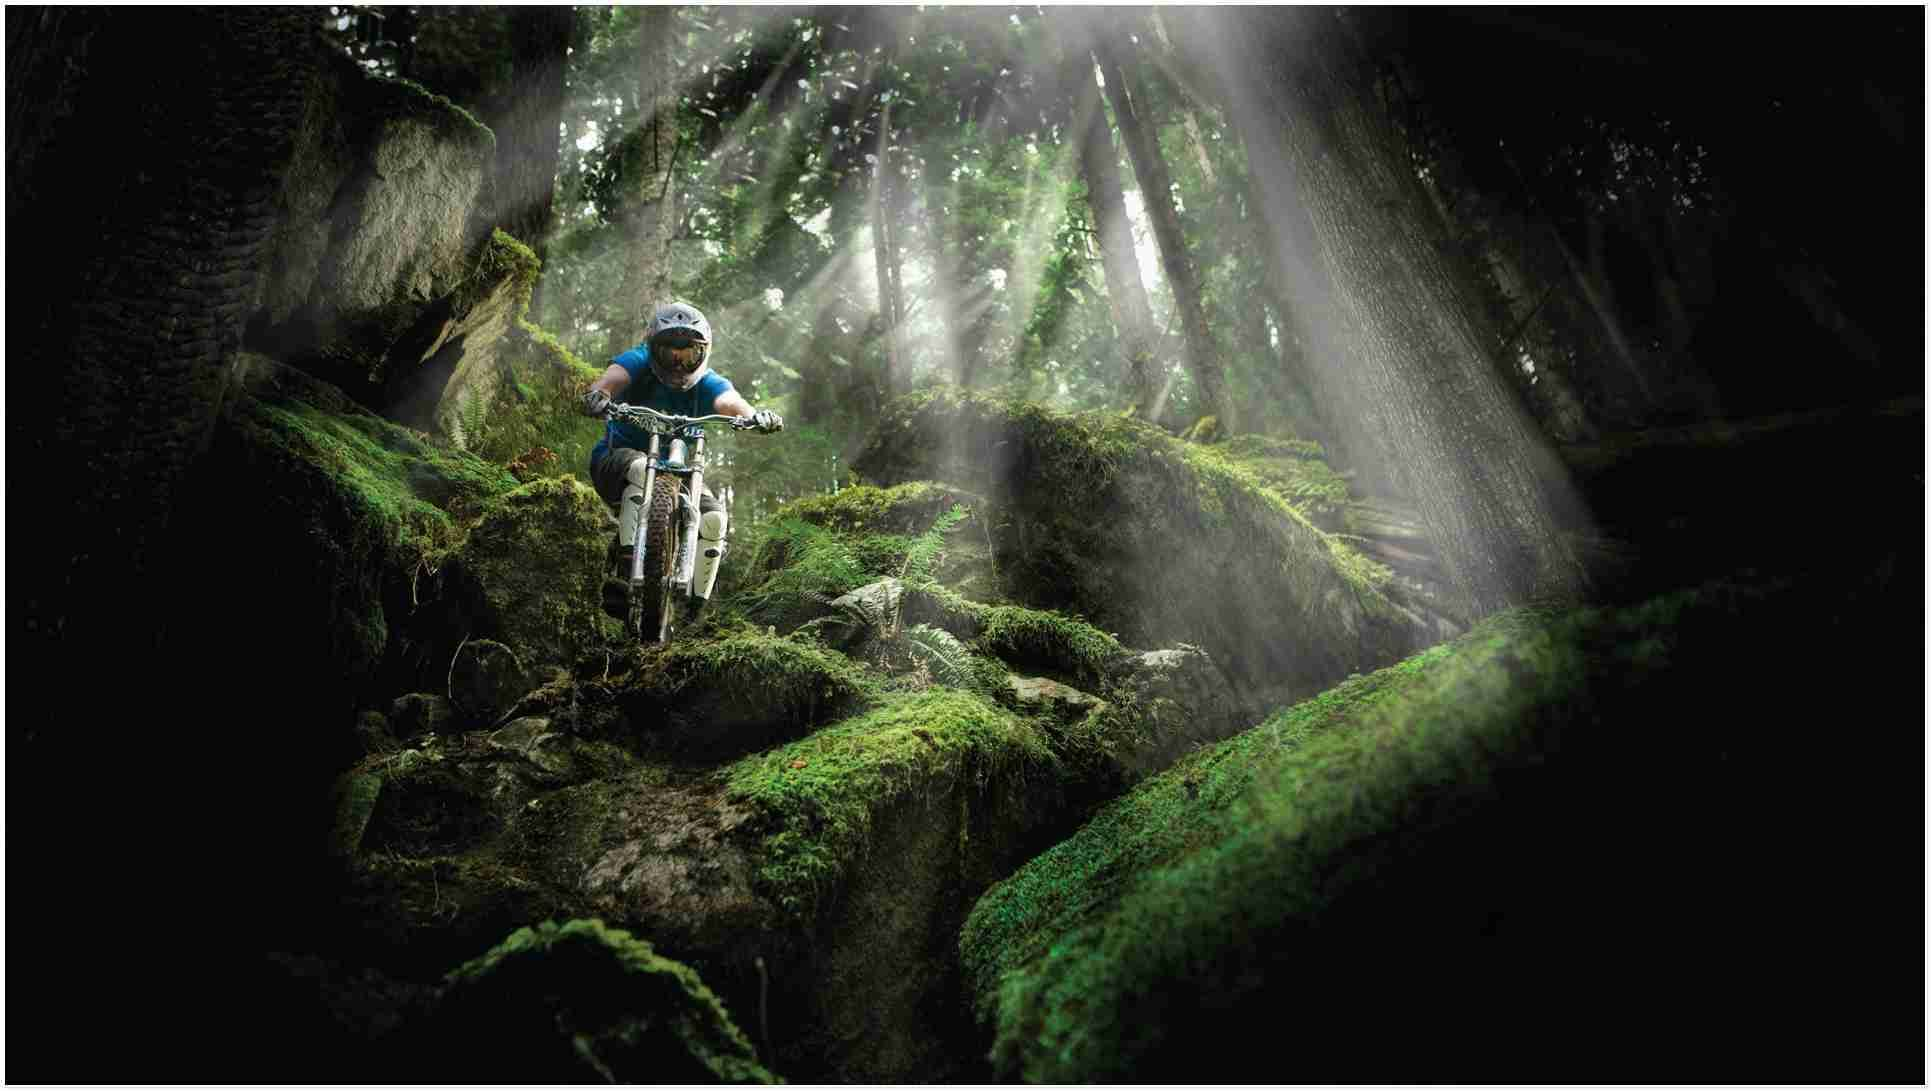 Top 10 Downhill Wallpapers Our Latest Collection Vtt Descente